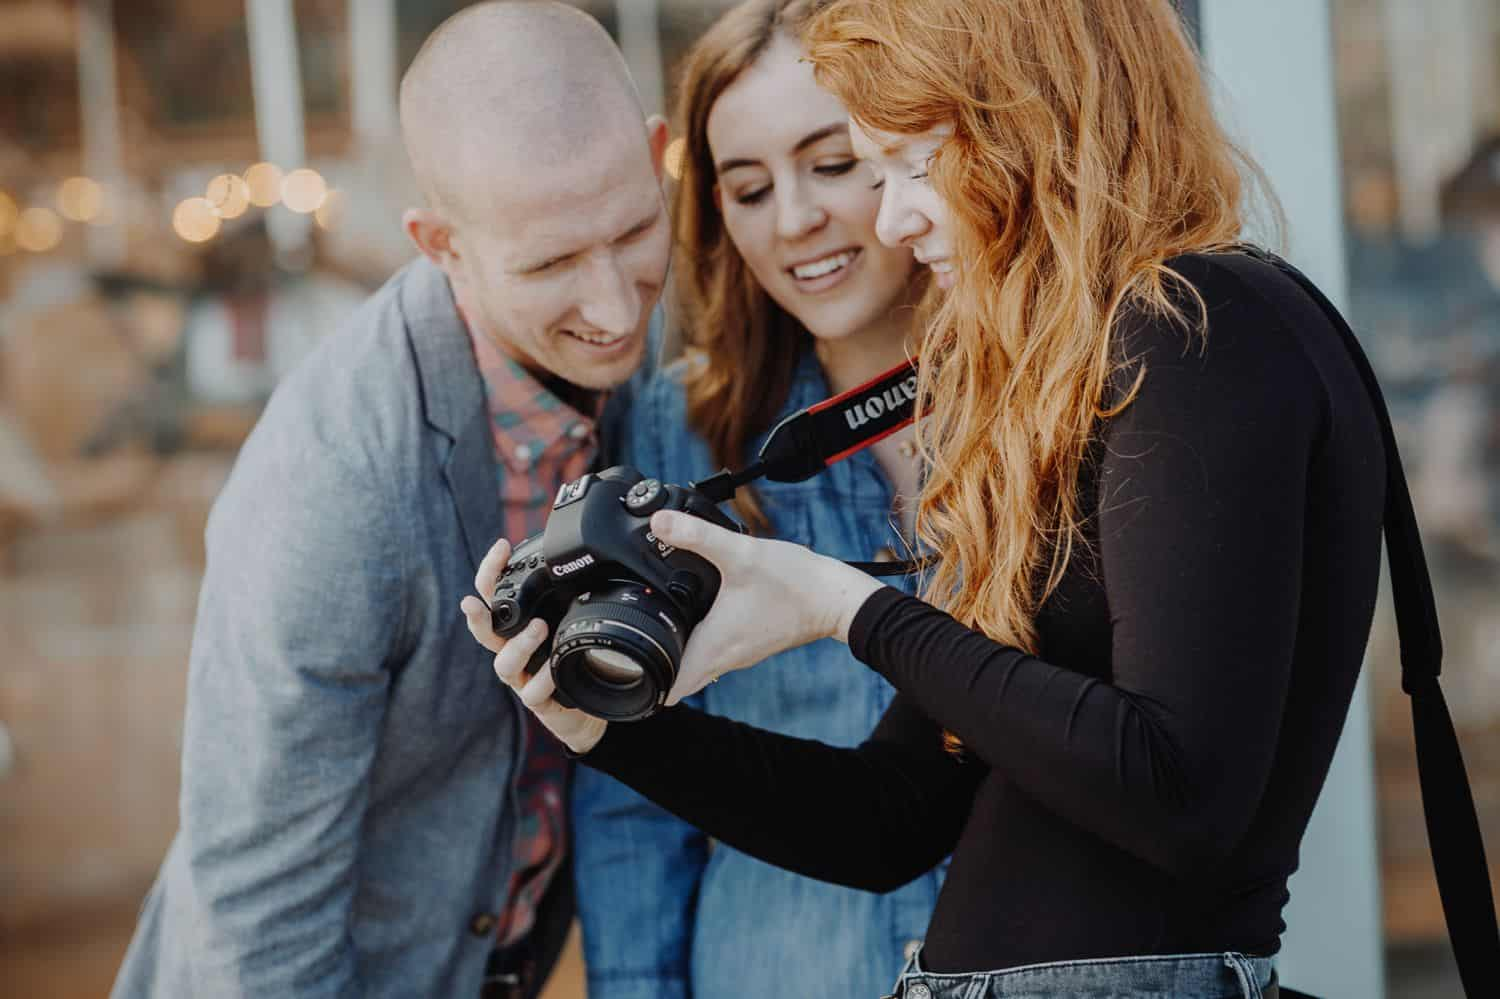 A photographer with red hair shows her camera's LCD screen to two happy clients.